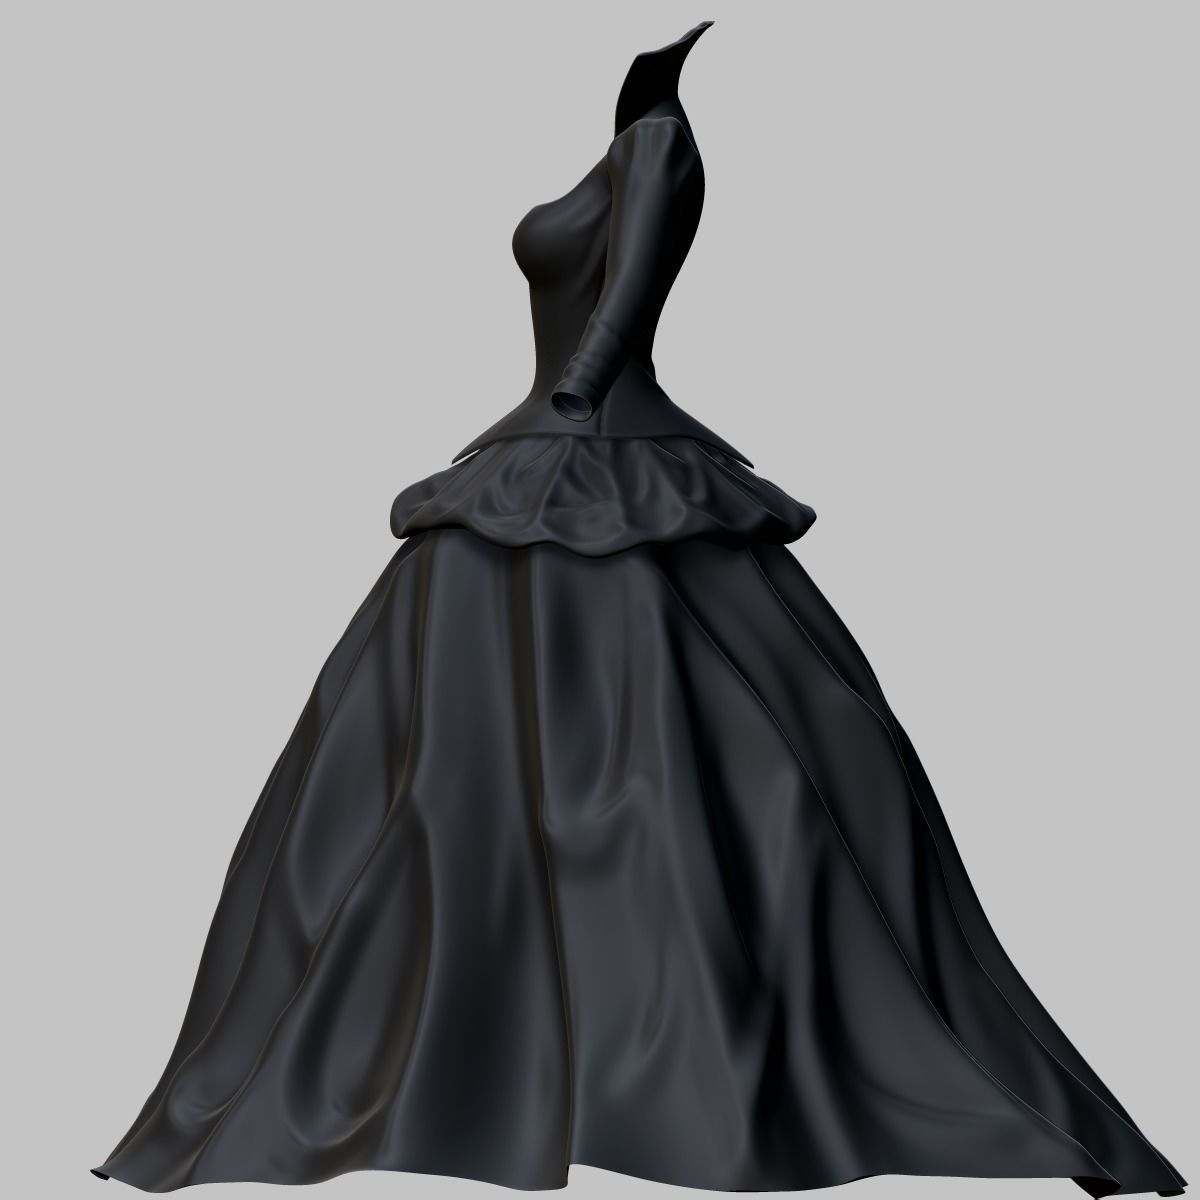 3D model Victorian Gothic Dress | CGTrader